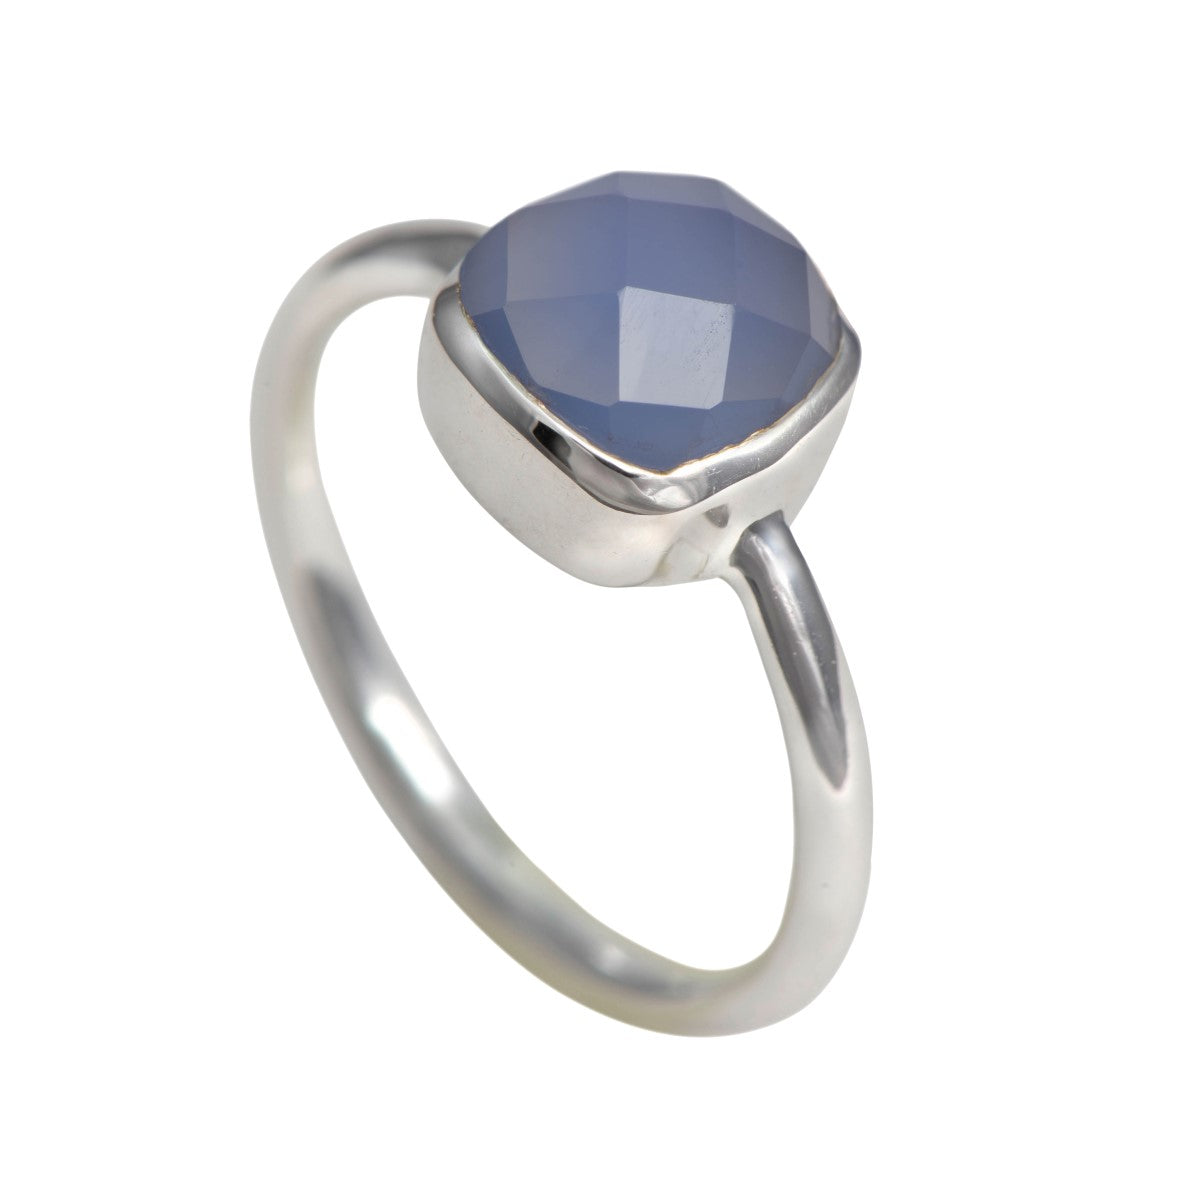 Faceted Square Cut Natural Gemstone Sterling Silver Solitaire Ring - Blue Chalcedony